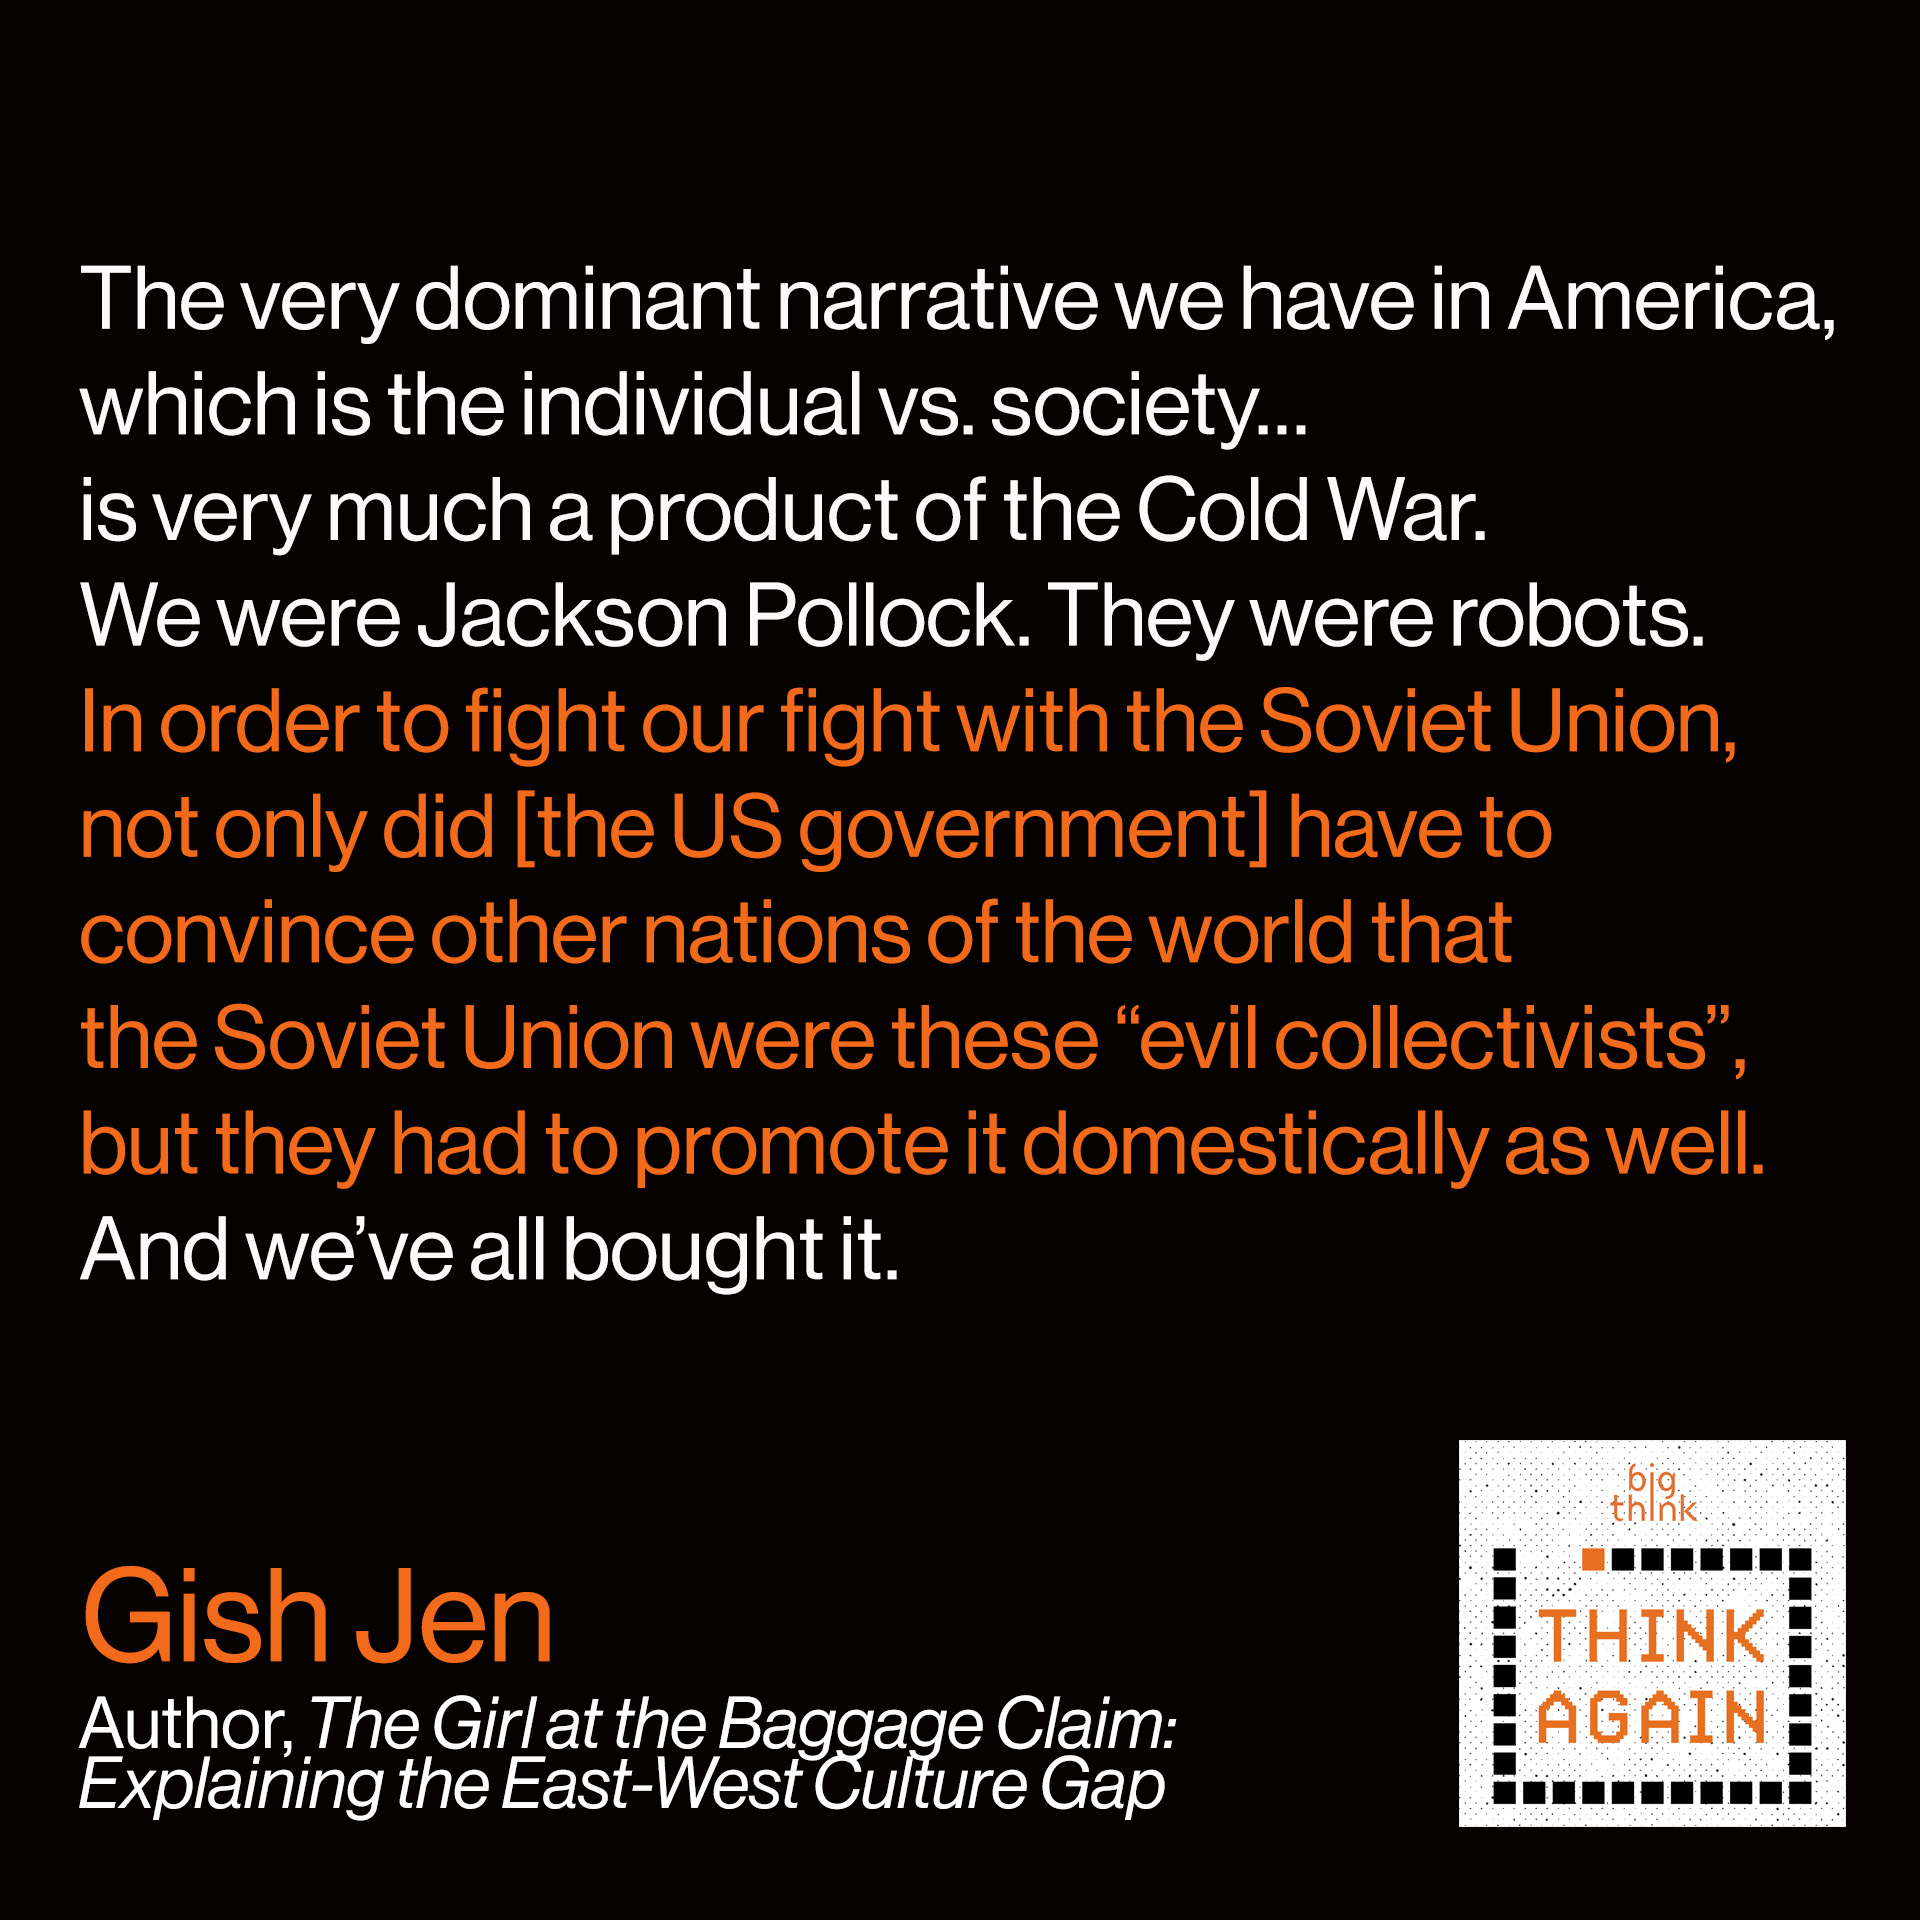 "Gish Jen Quote: The very dominant narrative we have in America, which is the individual vs. society…is very much a product of the Cold War. We were Jackson Pollock. They were robots. In order to fight our fight with the Soviet Union, not only did [the US government] have to convince other nations of the world that the Soviet Union were these ""evil collectivists"", but they had to promote it domestically as well. And we've all bought it."